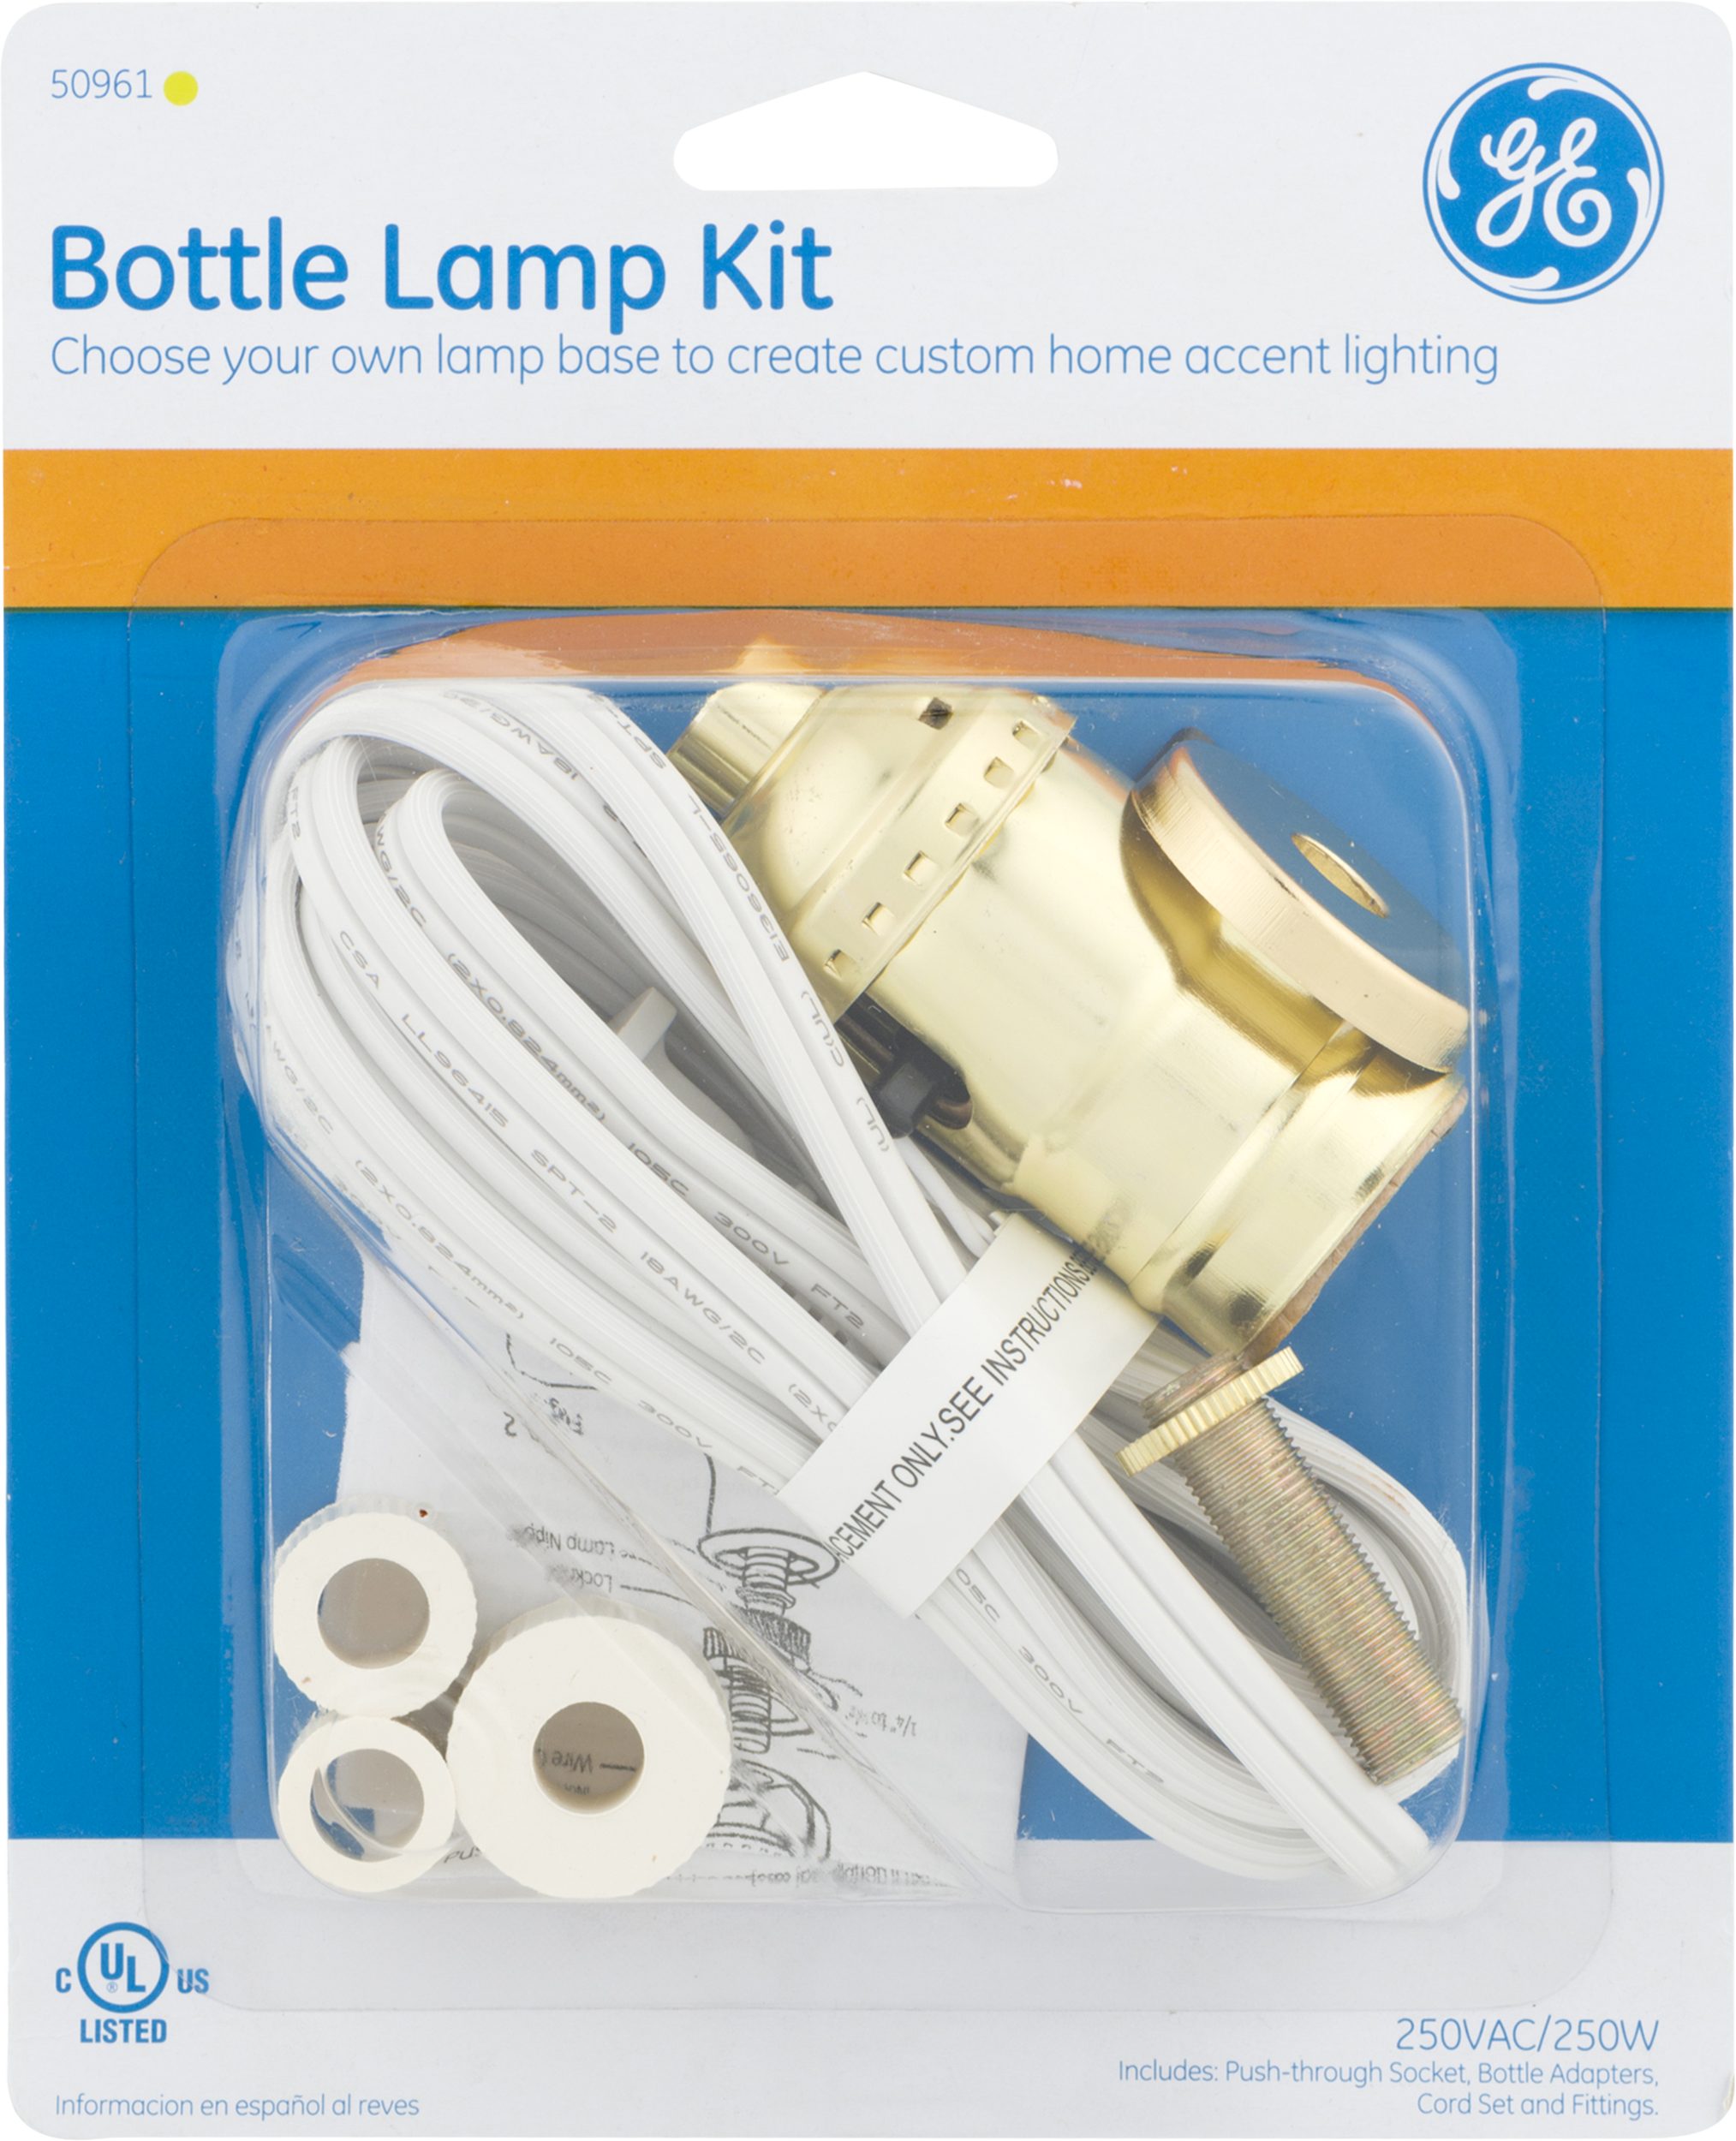 GE Bottle Lamp Kit, 1.0 CT   Walmart.com